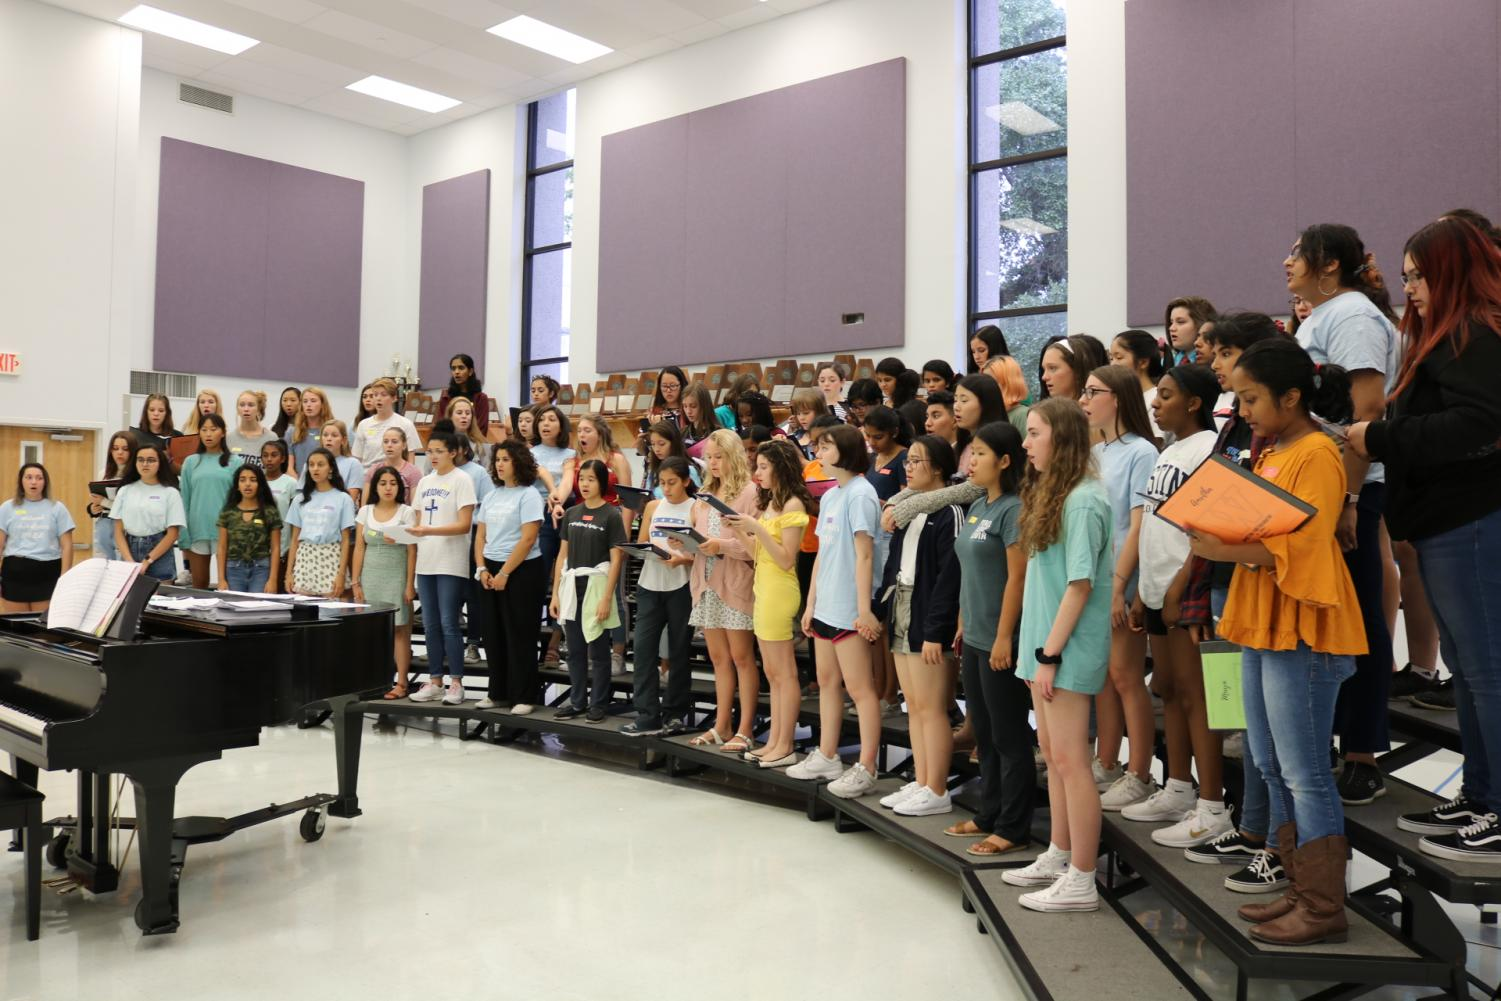 The+women%27s+choir+gathered+in+a+sectional+to+learn+a+new+piece.+It+was+the+first+time+this+school+year+everyone+was+able+to+sing+together.+%22It+was+really+fun+to+hear+everyone%27s+voices+and+see+how+everyone+came+together%2C%22+Sarah+Armosky+%2720+said.